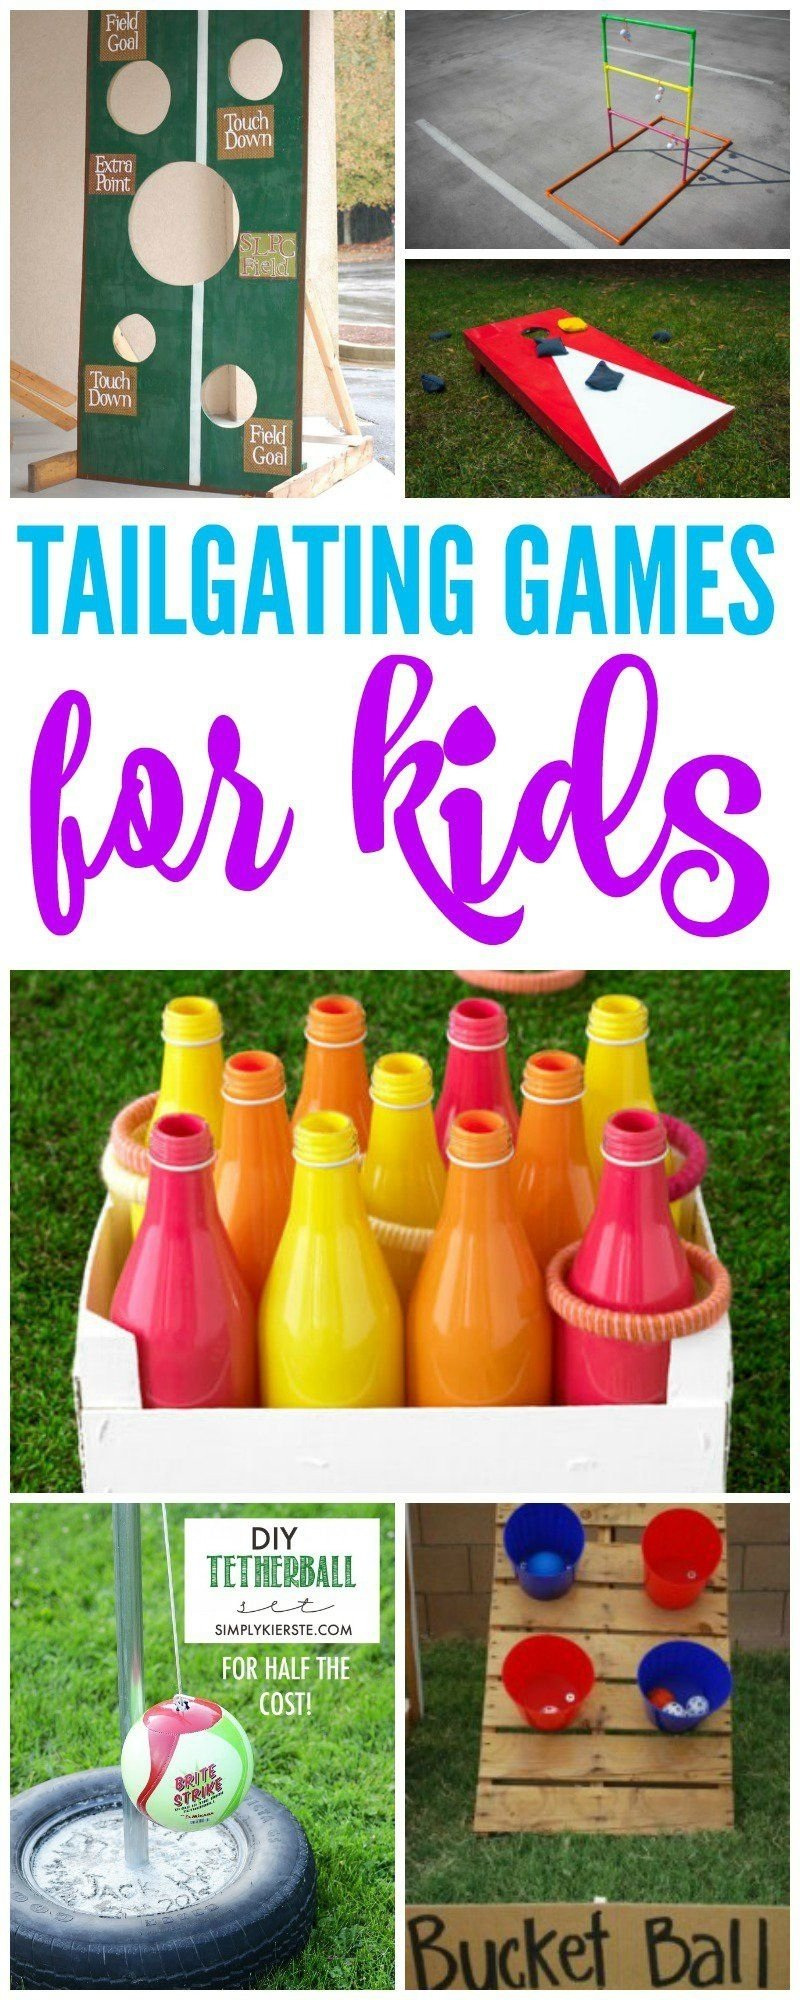 10 Stylish Football Party Ideas For Kids tailgate games for kids in the yard before the game activities 2021